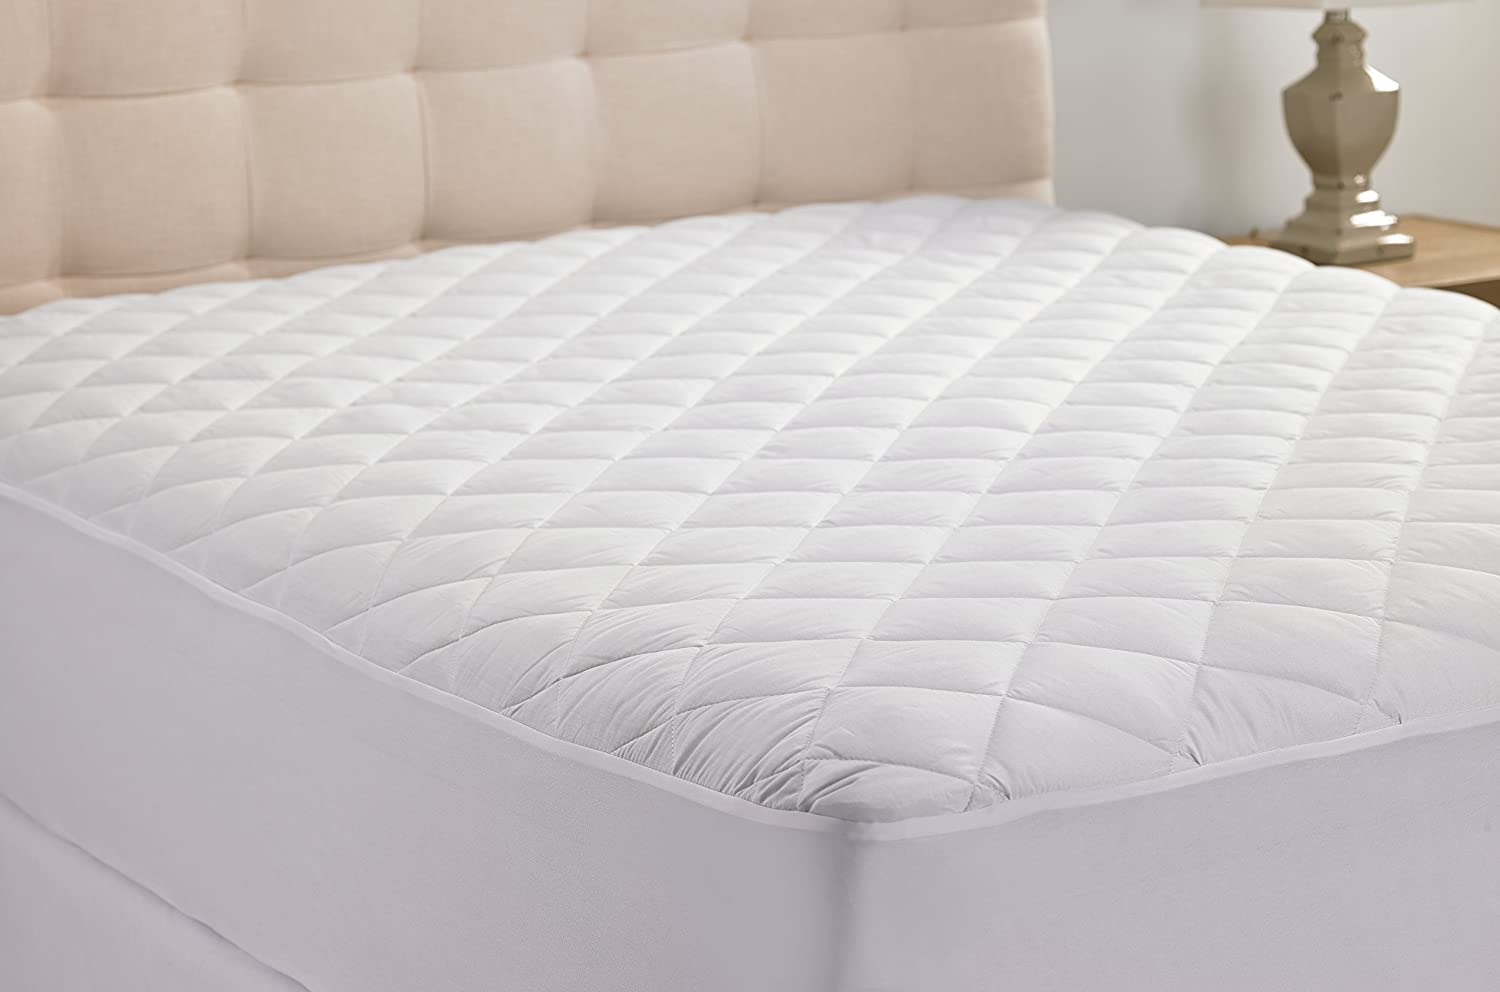 hypoallergenic quilted stretch to fit mattress pad by hanna kay 10 year ebay. Black Bedroom Furniture Sets. Home Design Ideas